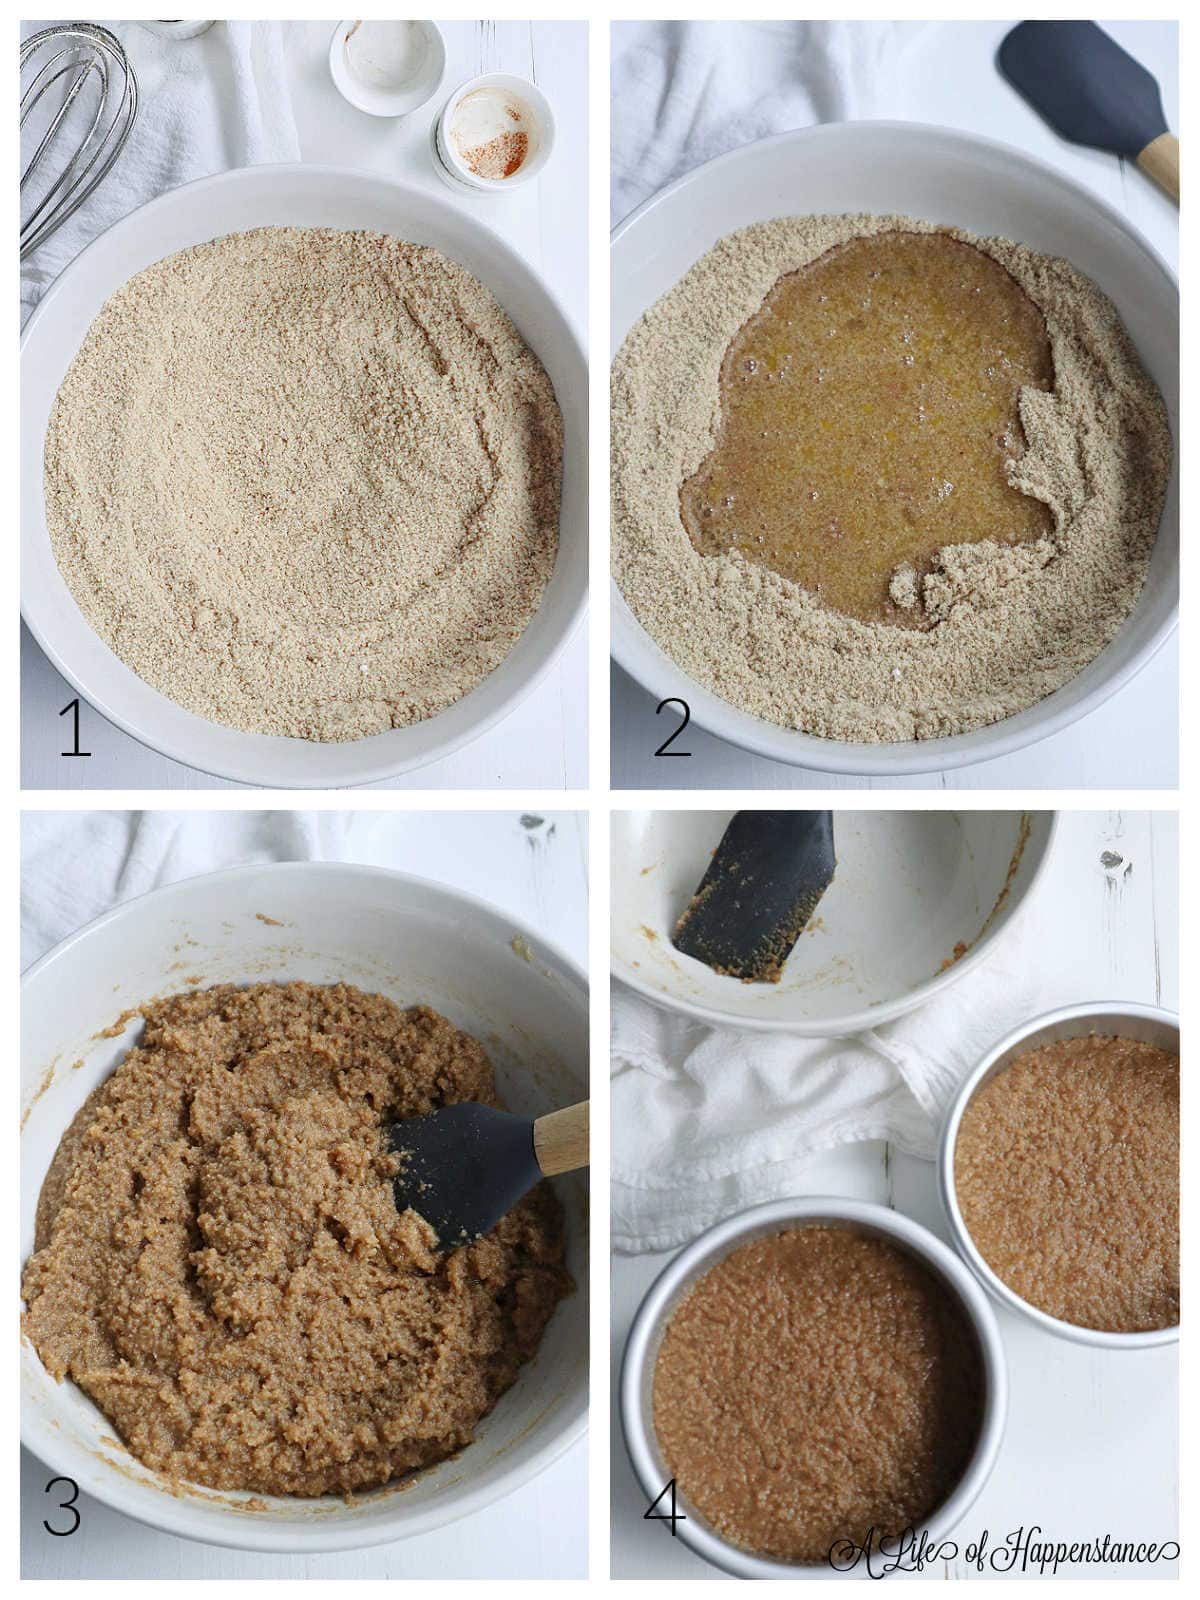 A four photo collage showing how to make the apple cider cake. Photo one; the dry ingredients in a white bowl. Photo two; the wet ingredients in the bowl with the dry ingredients. Photo three; the batter mixed and in a white bowl. Photo four; the batter in two round cake pans.